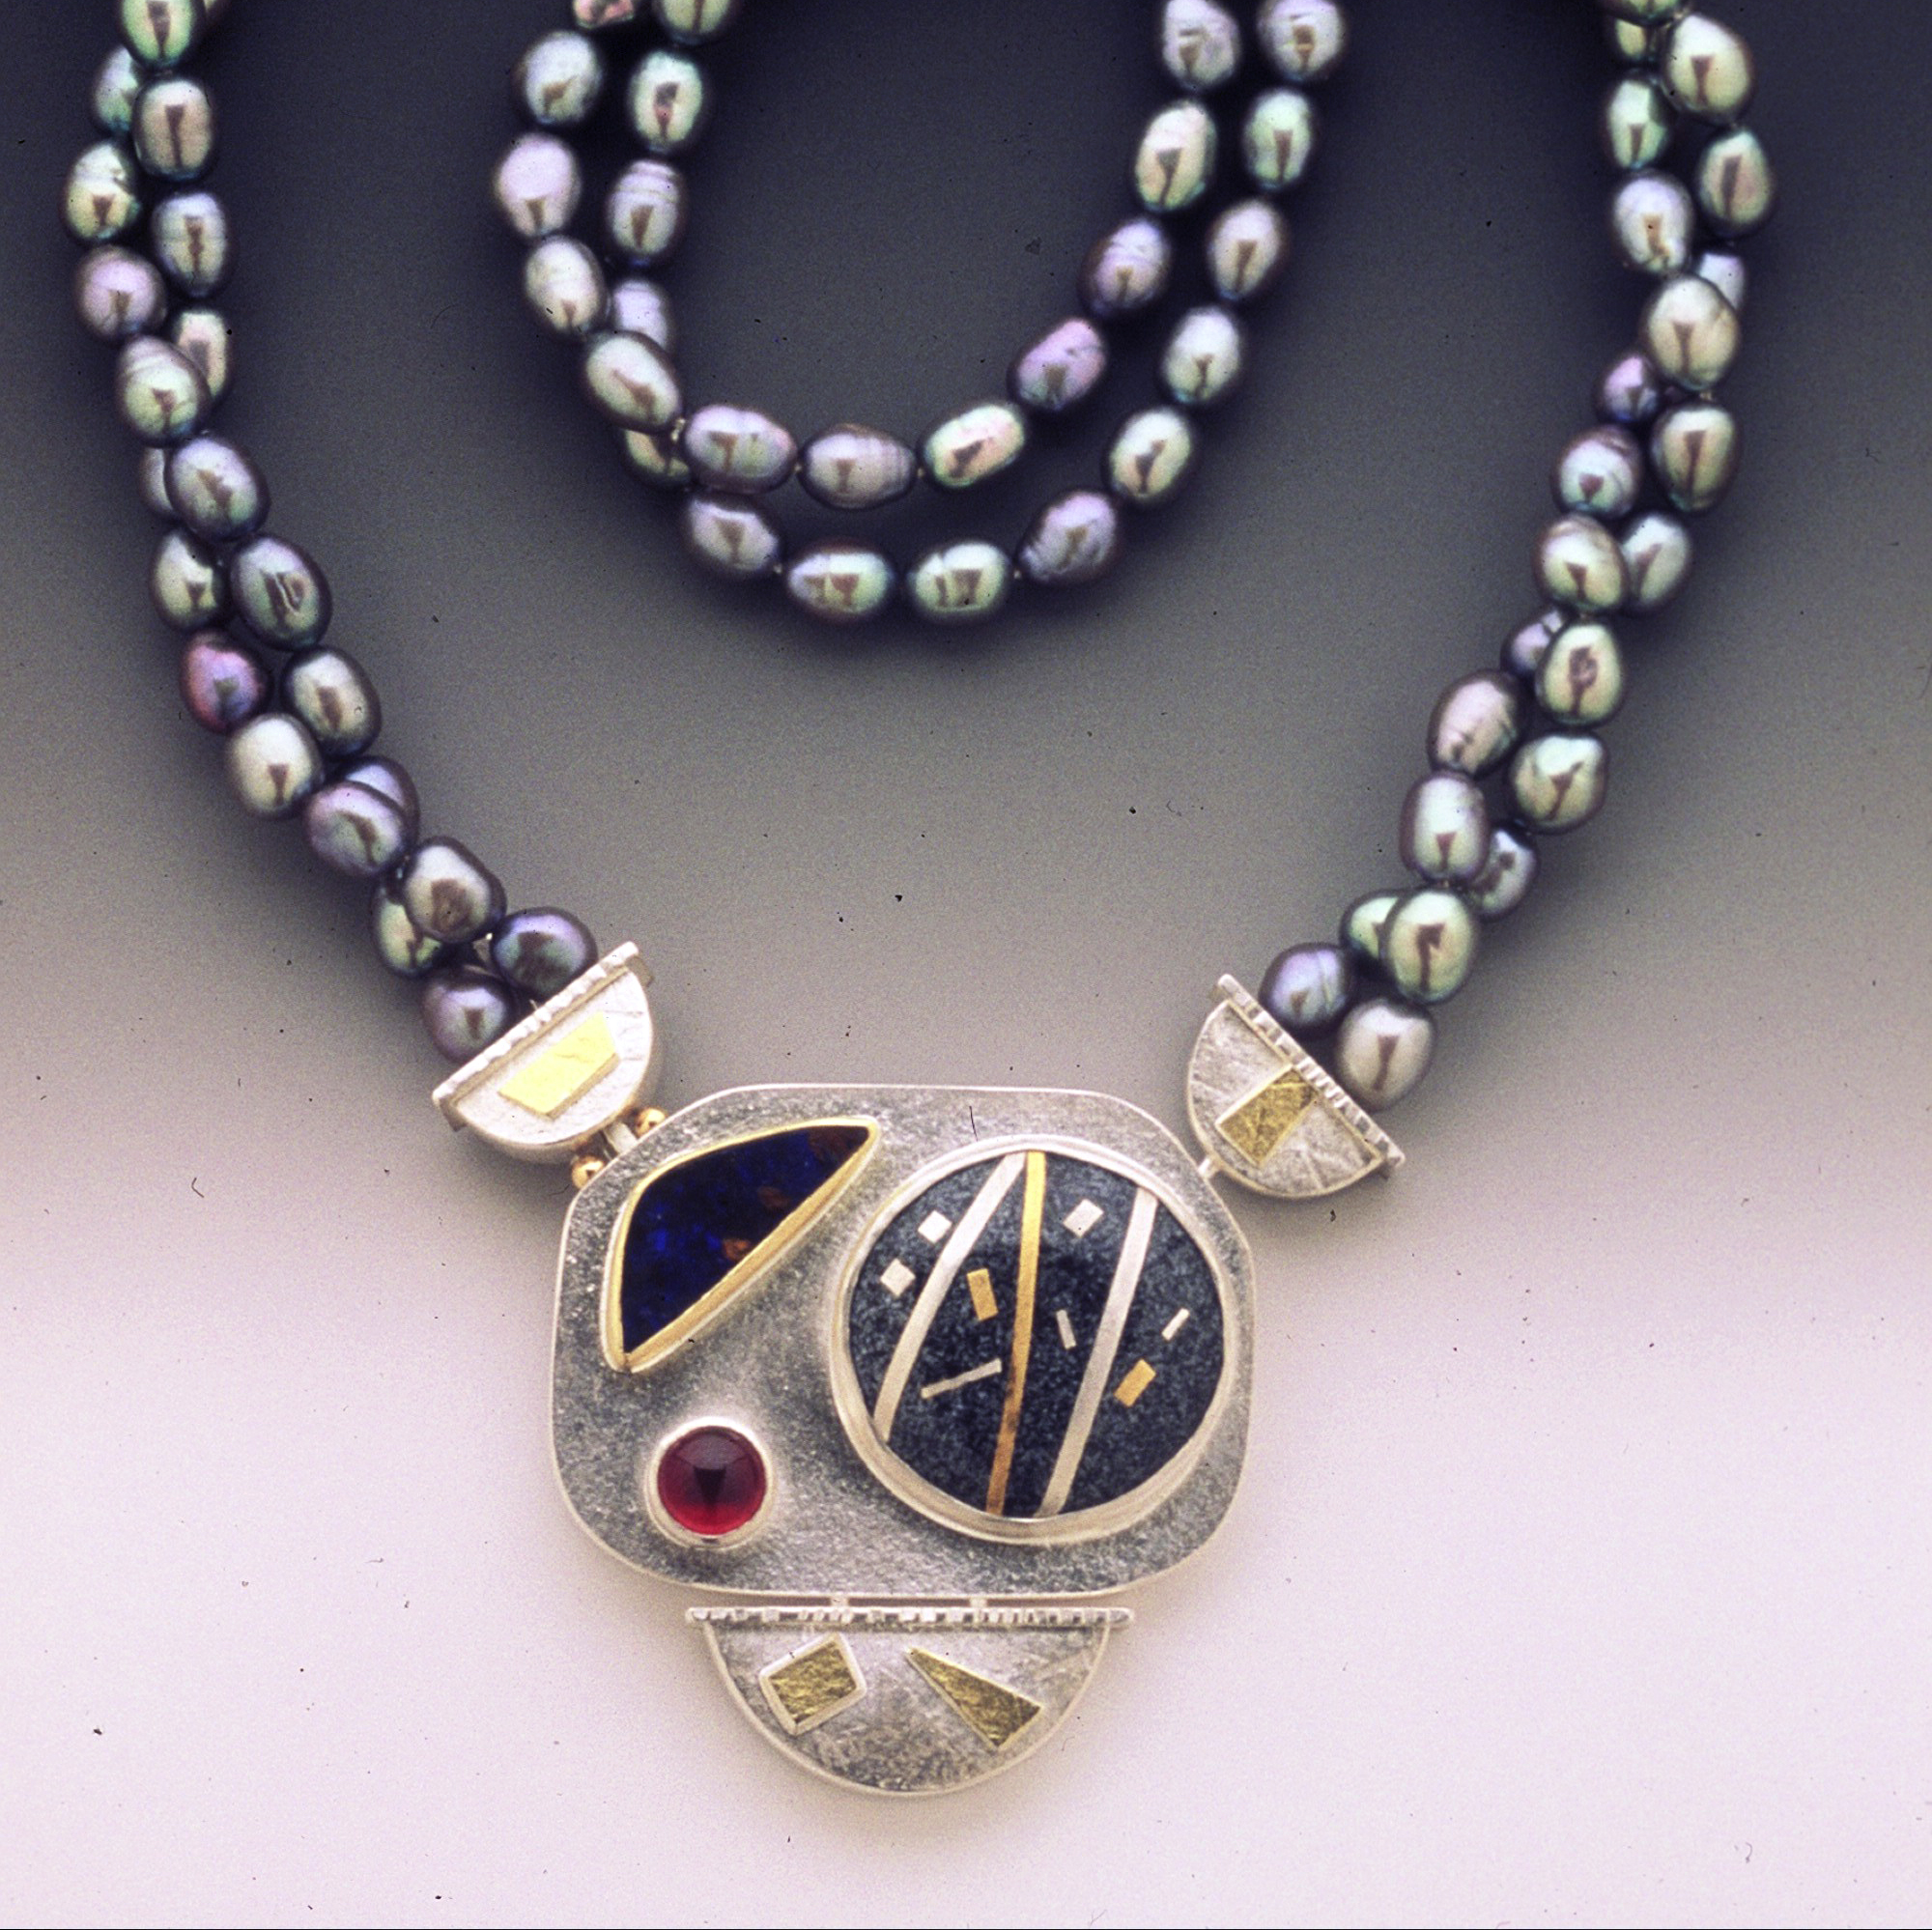 Class Image Intermediate Metals/Jewelry – Emphasis on Bezels